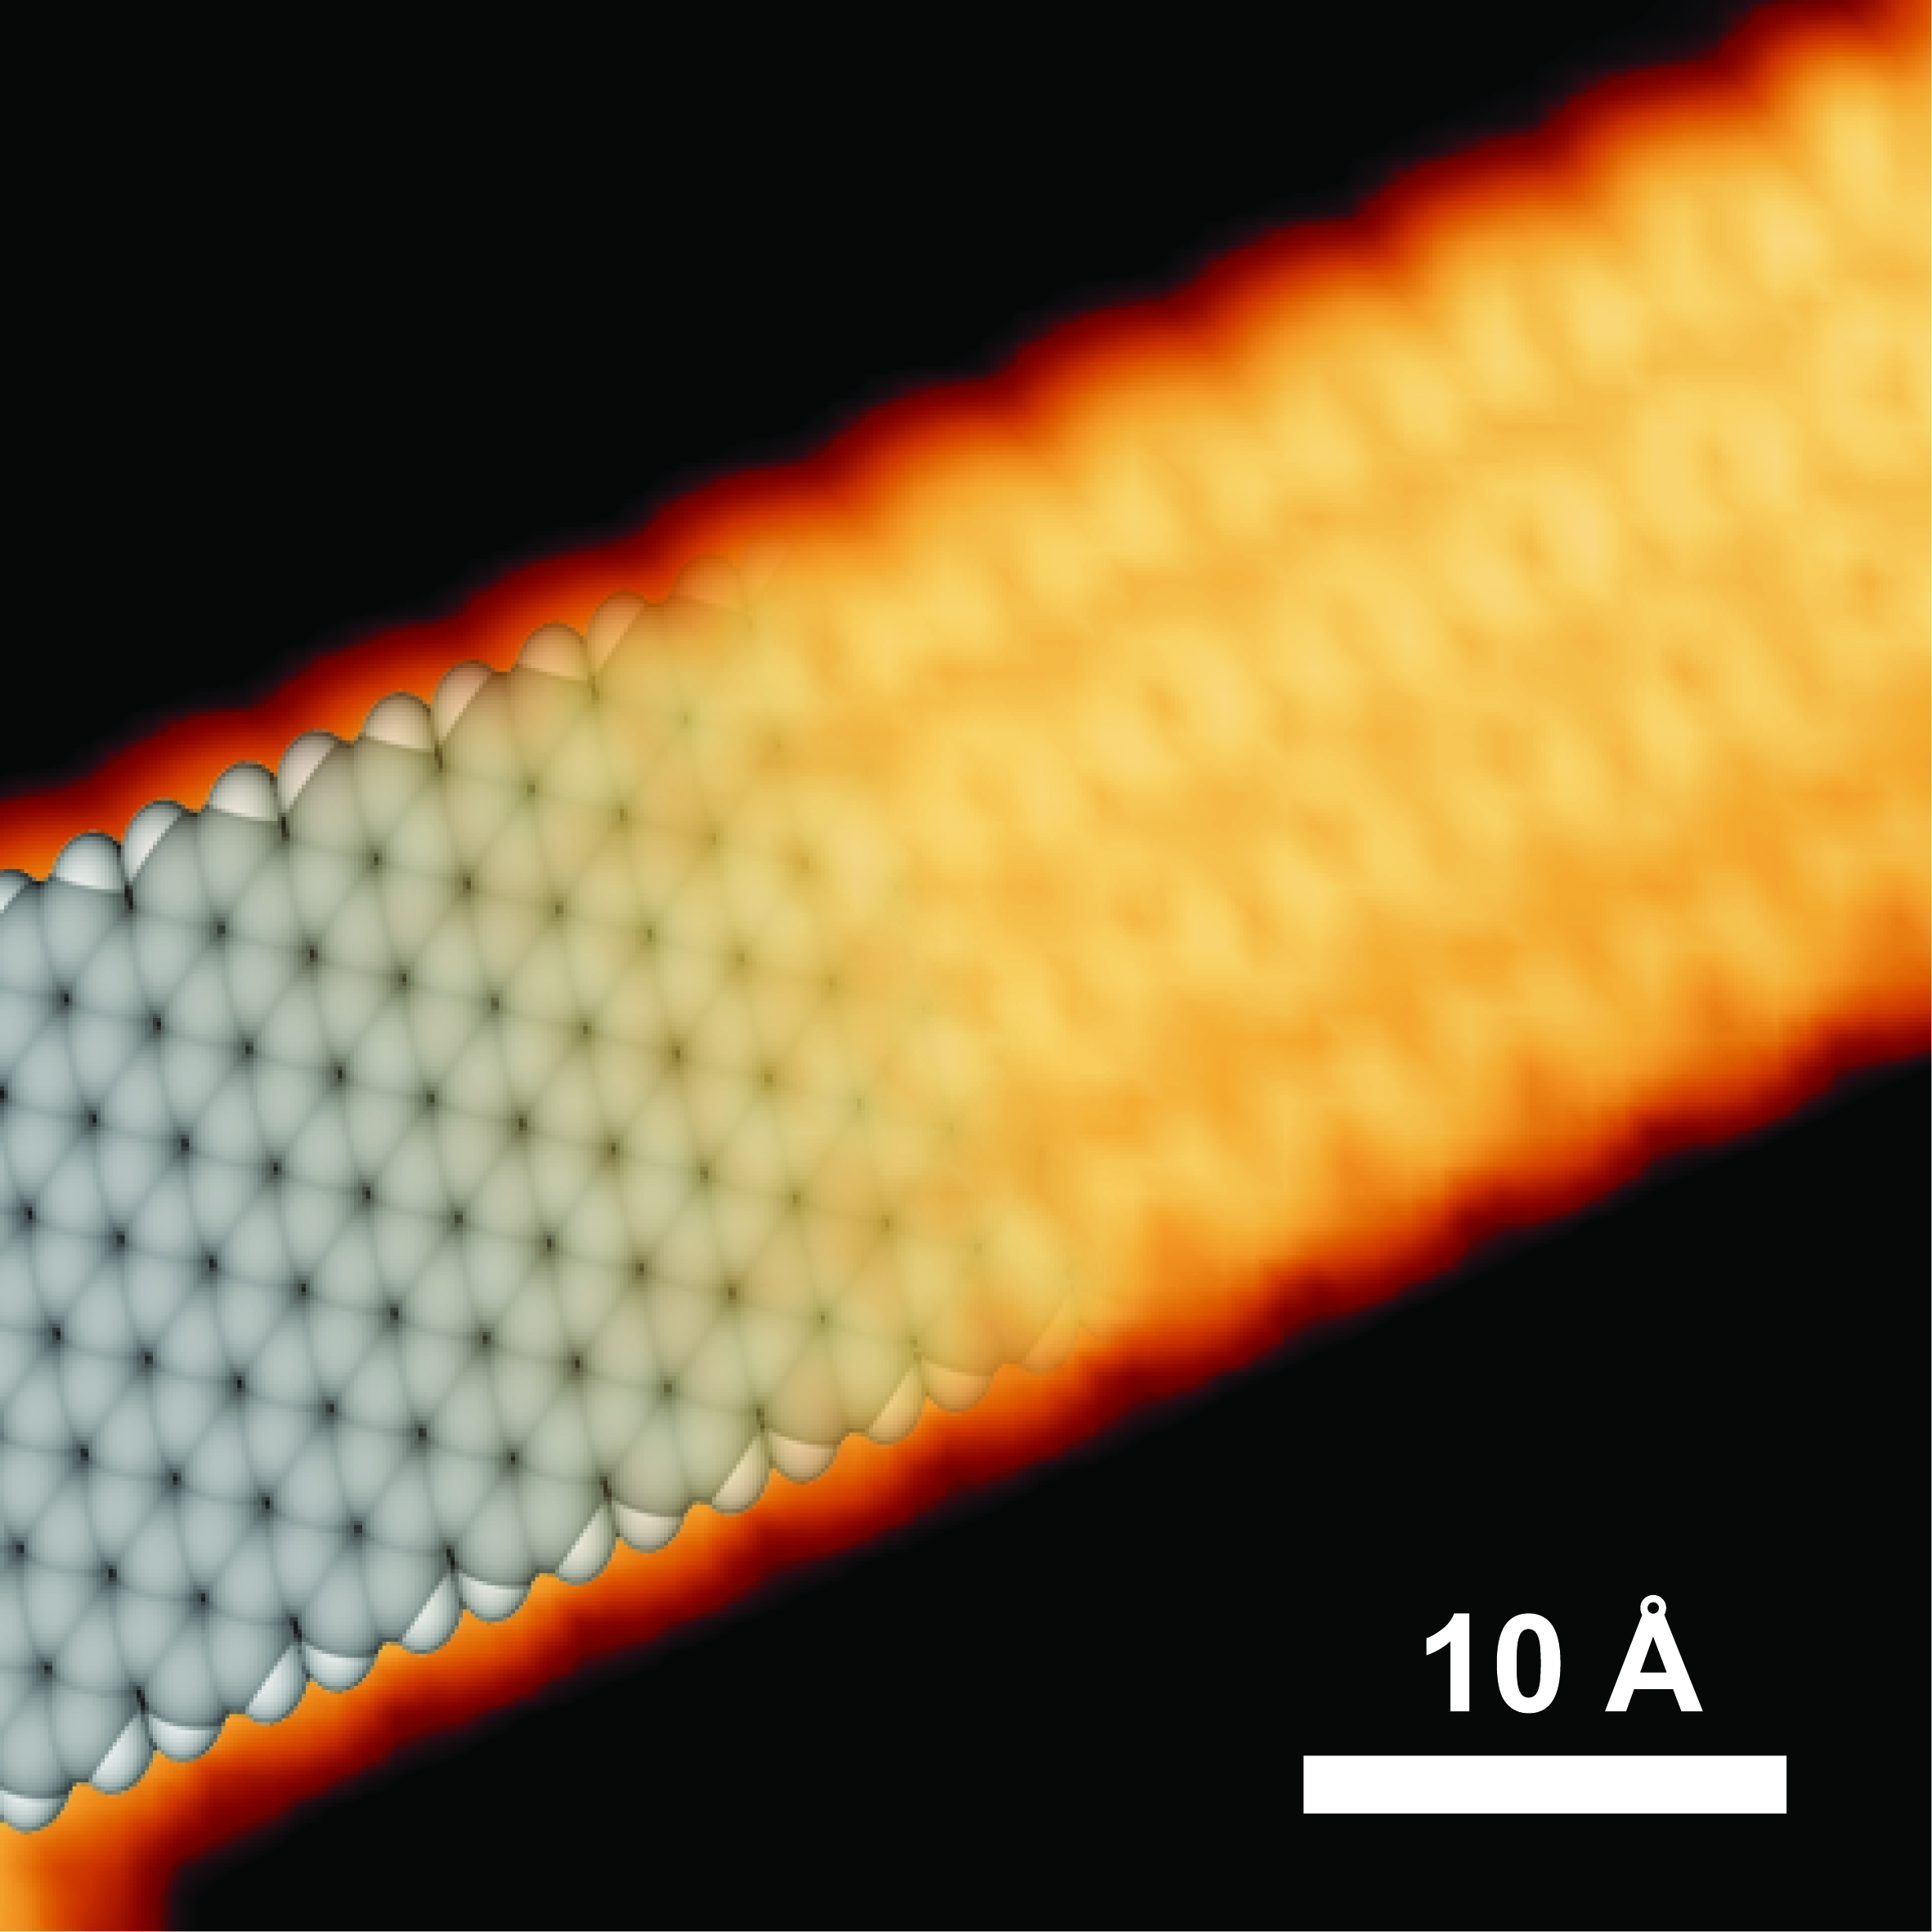 single graphene nanoribbon